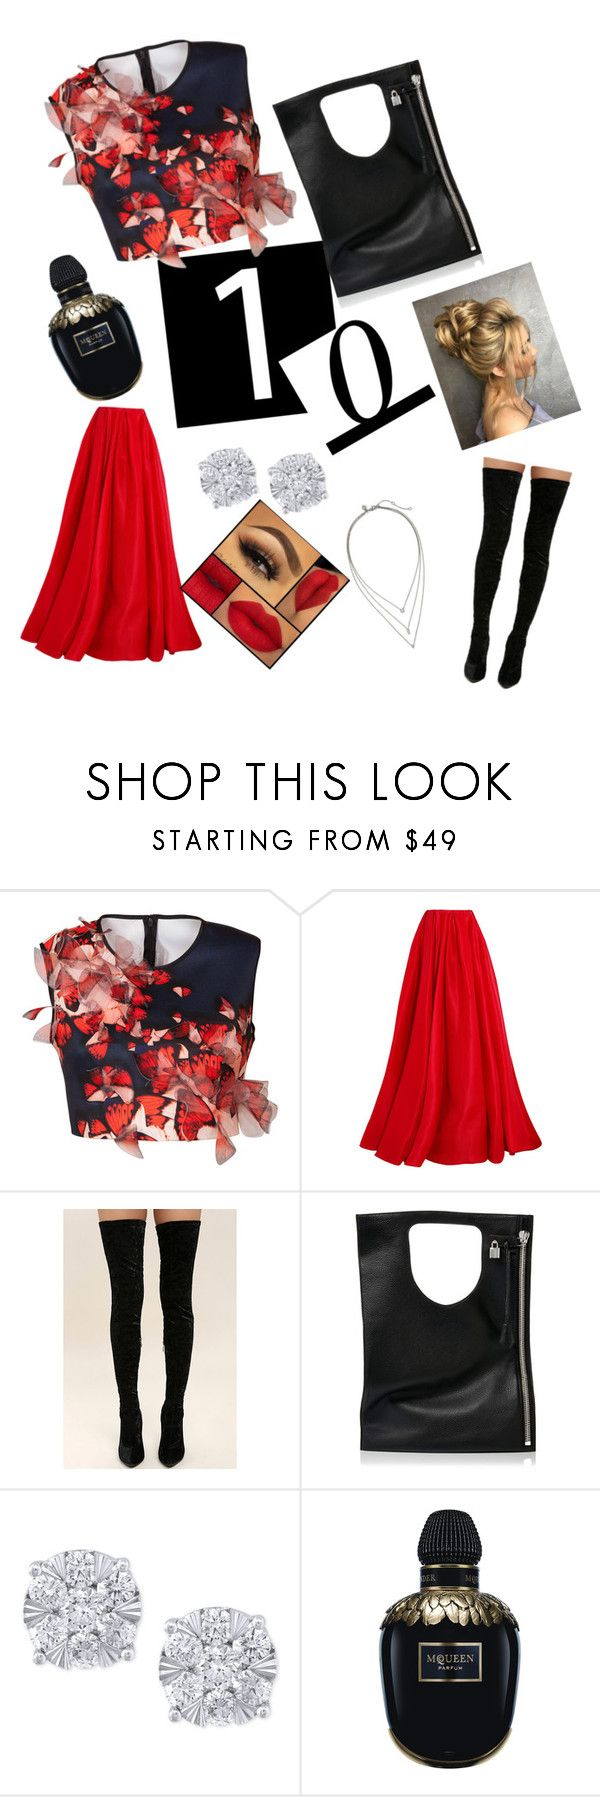 """""""Celebrate Our 10th Polyversary!"""" by anastasiafaithfilipic ❤ liked on Polyvore featuring Clover Canyon, Reem Acra, Cape Robbin, Alix, Effy Jewelry, Alexander McQueen, Banana Republic, polyversary and happpy10thanniversary"""